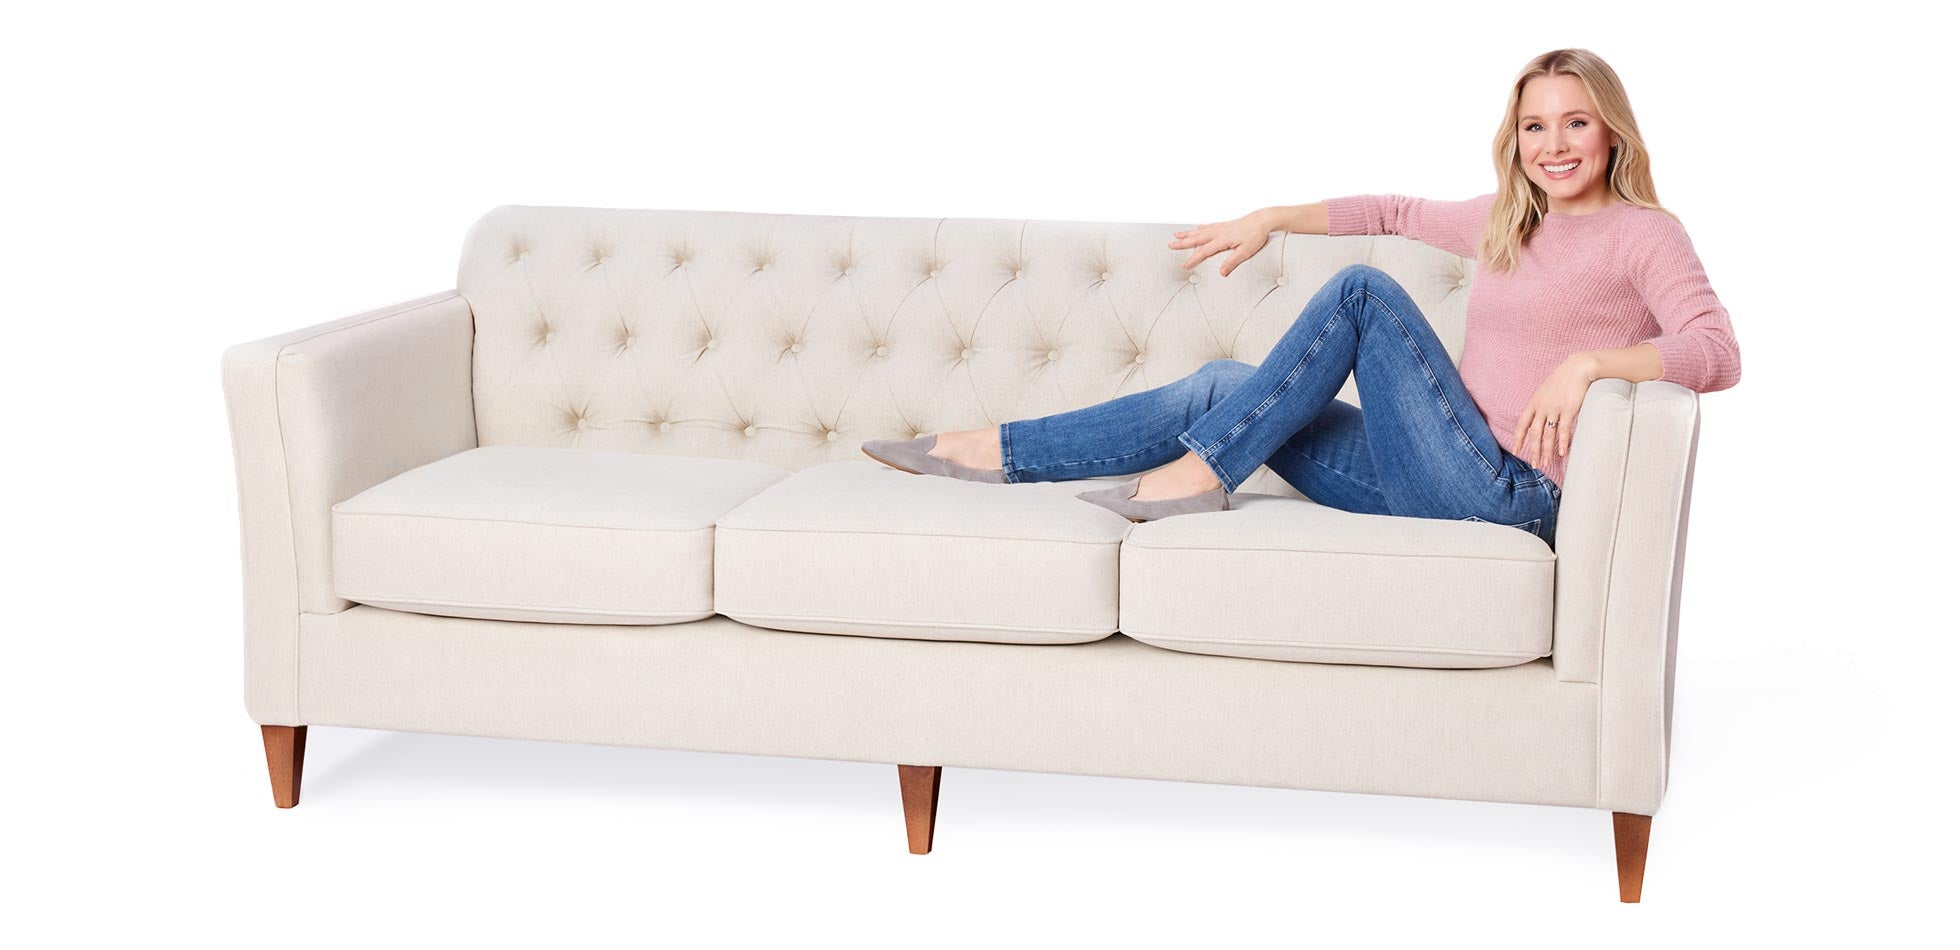 - Sofas For Real Life With Kristen Bell La-Z-Boy